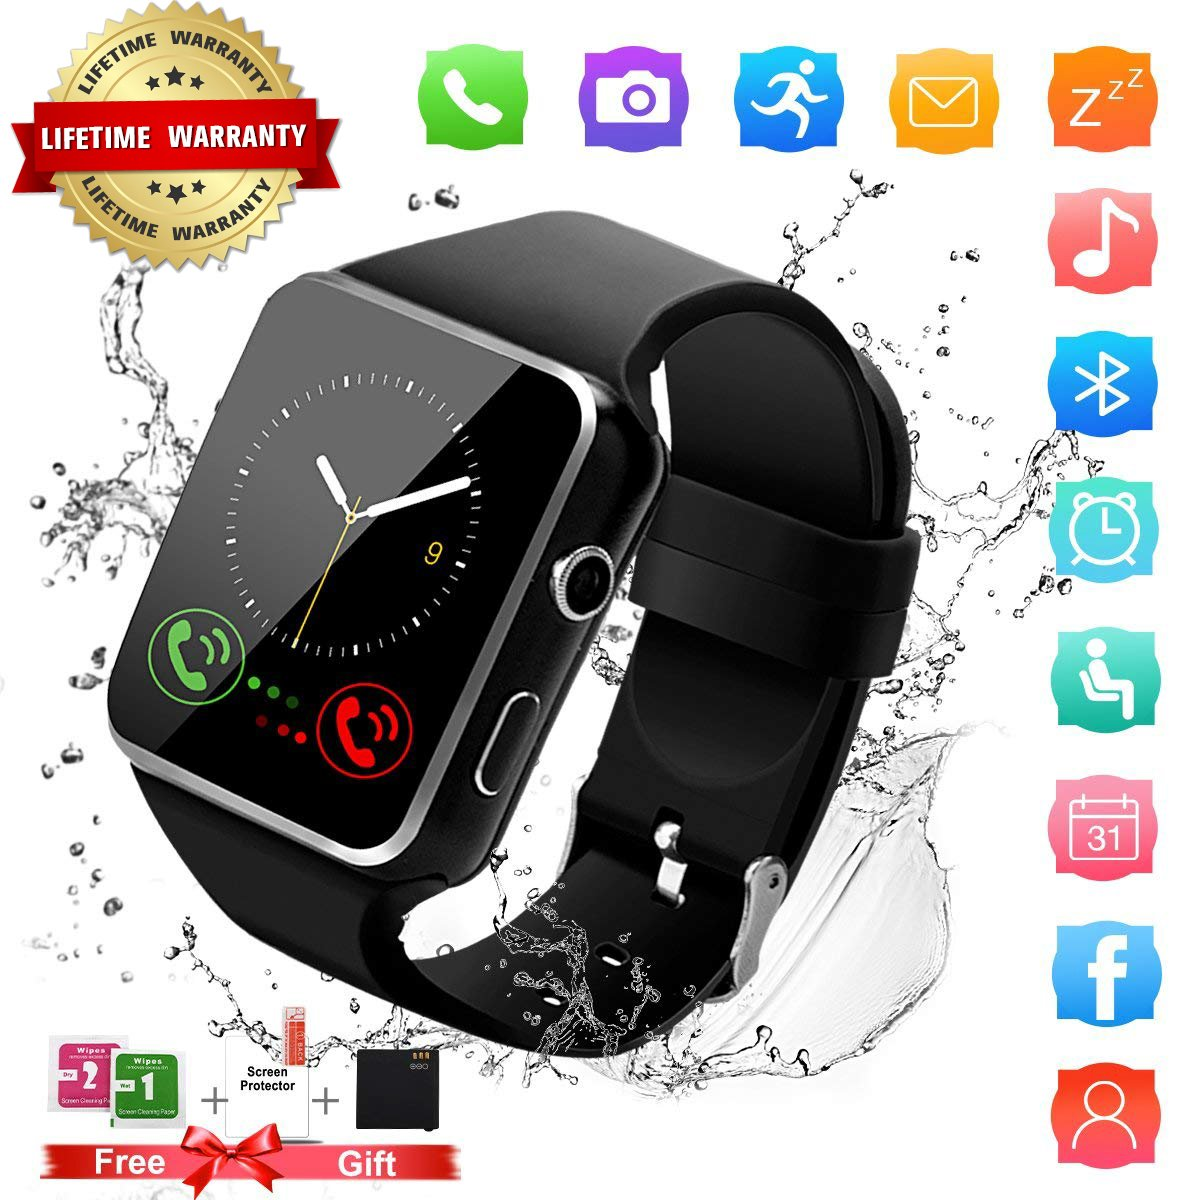 Smart Watch,Bluetooth Smartwatch Touch Screen Wrist Watch with Camera/SIM Card Slot Waterproof Android Smart Watch Sports Fitness Watch for Android iPhone IOS Samsung Phones Watch Men Women Kids Black